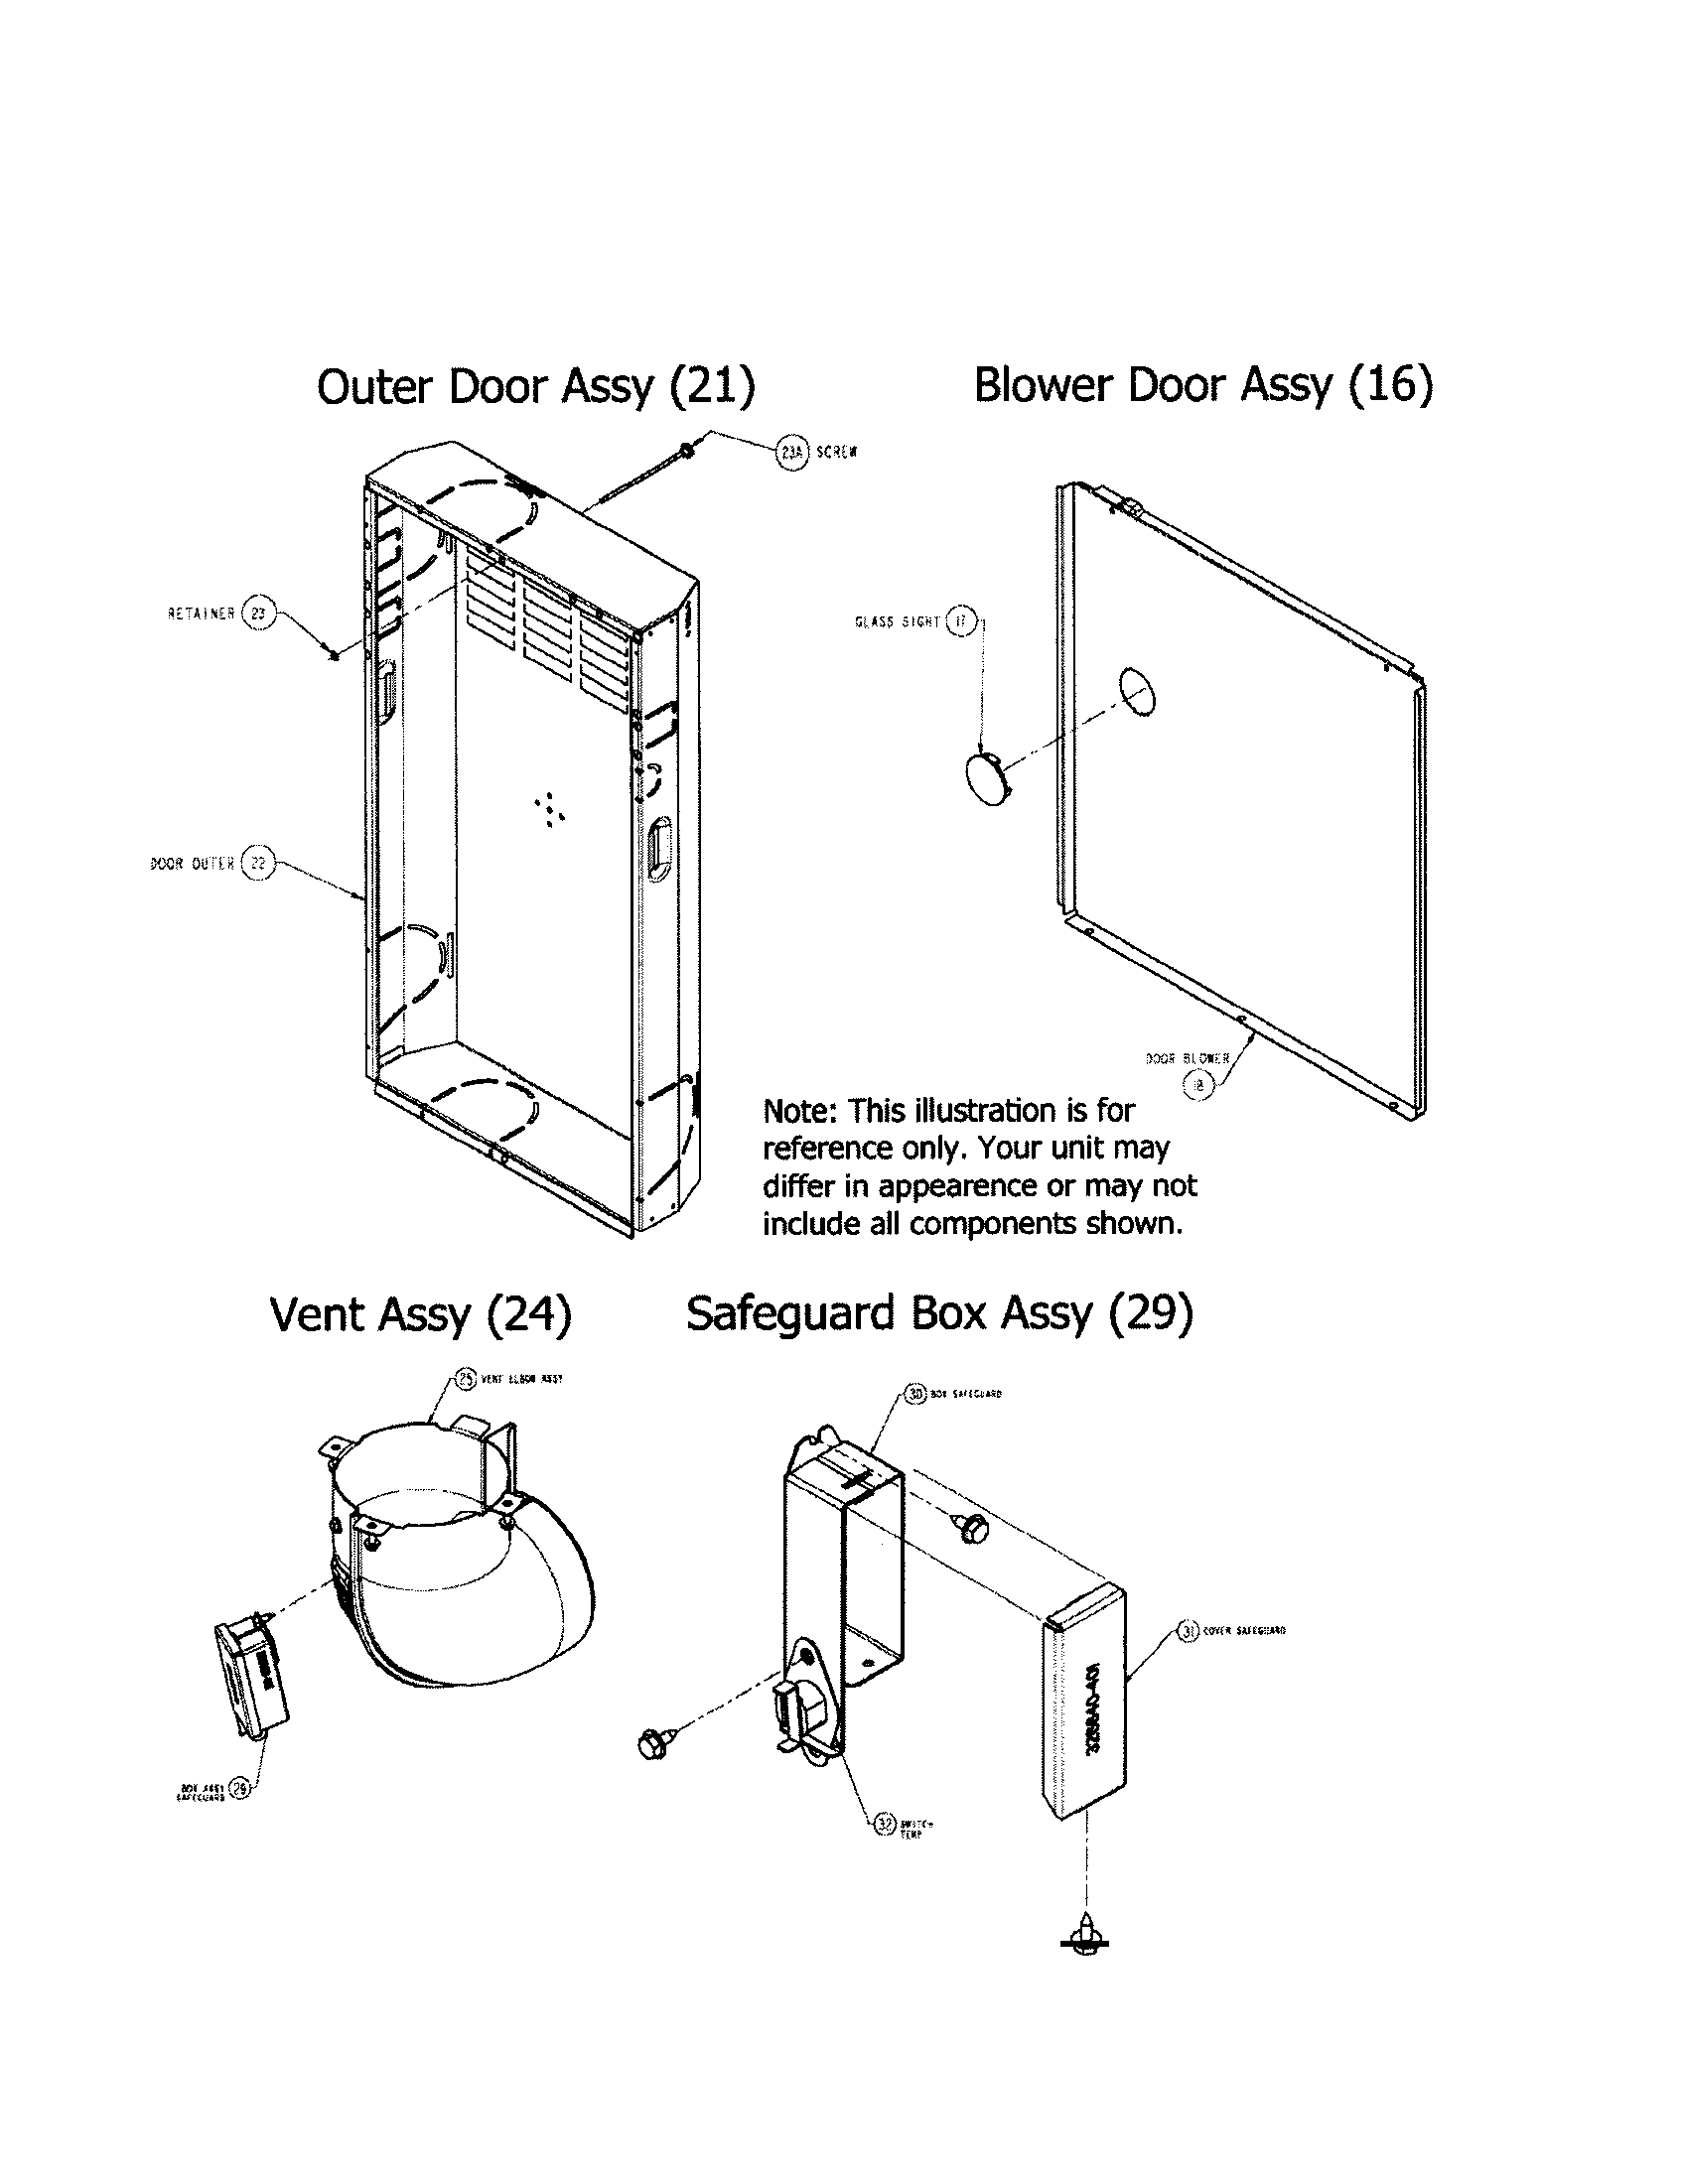 OUTER/BLOWER DOOR/VENT/SAFEGUARD Diagram & Parts List for